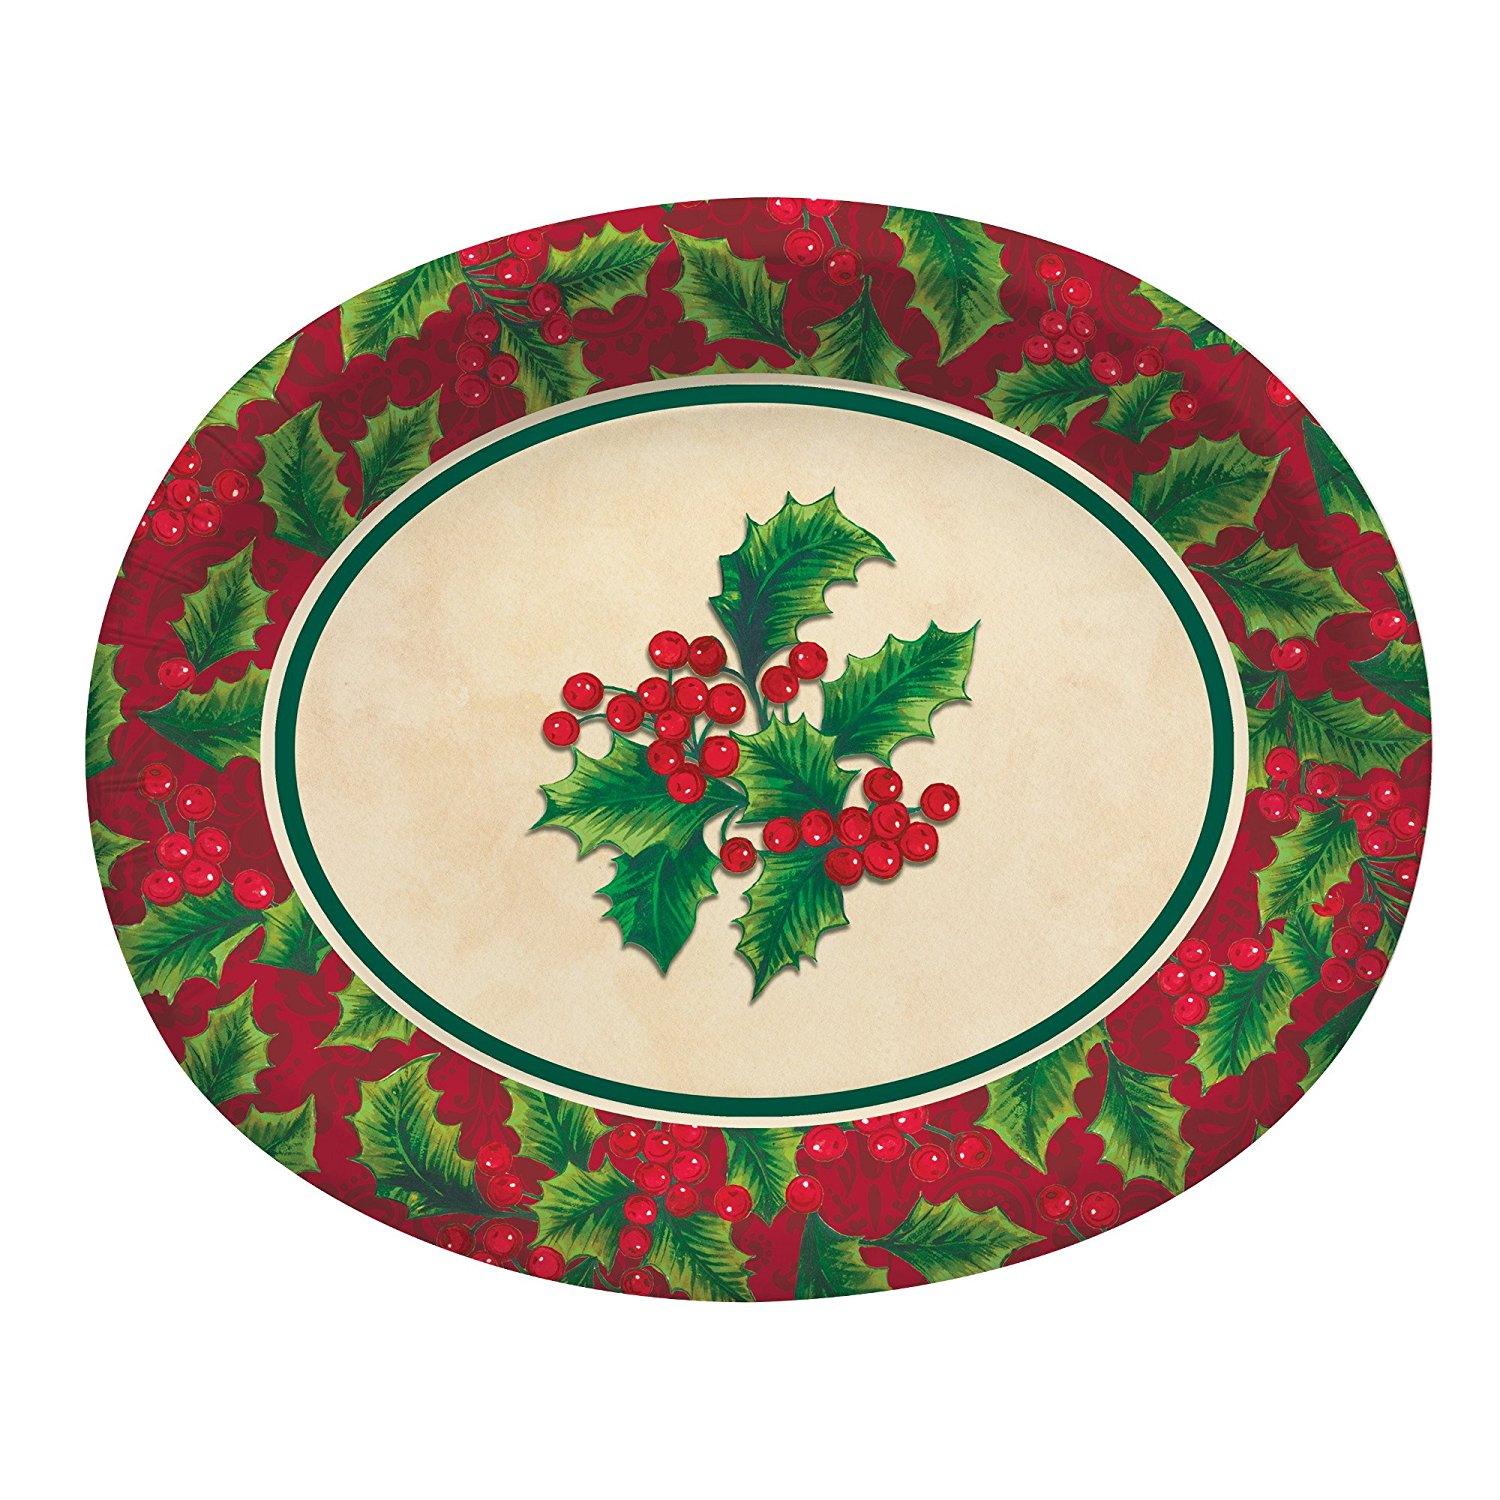 Boughs of Holly Christmas 8 ct Oval Platters 10\  x 12\  Banquet Sturdy  sc 1 st  Walmart & Boughs of Holly Christmas 8 ct Oval Platters 10\